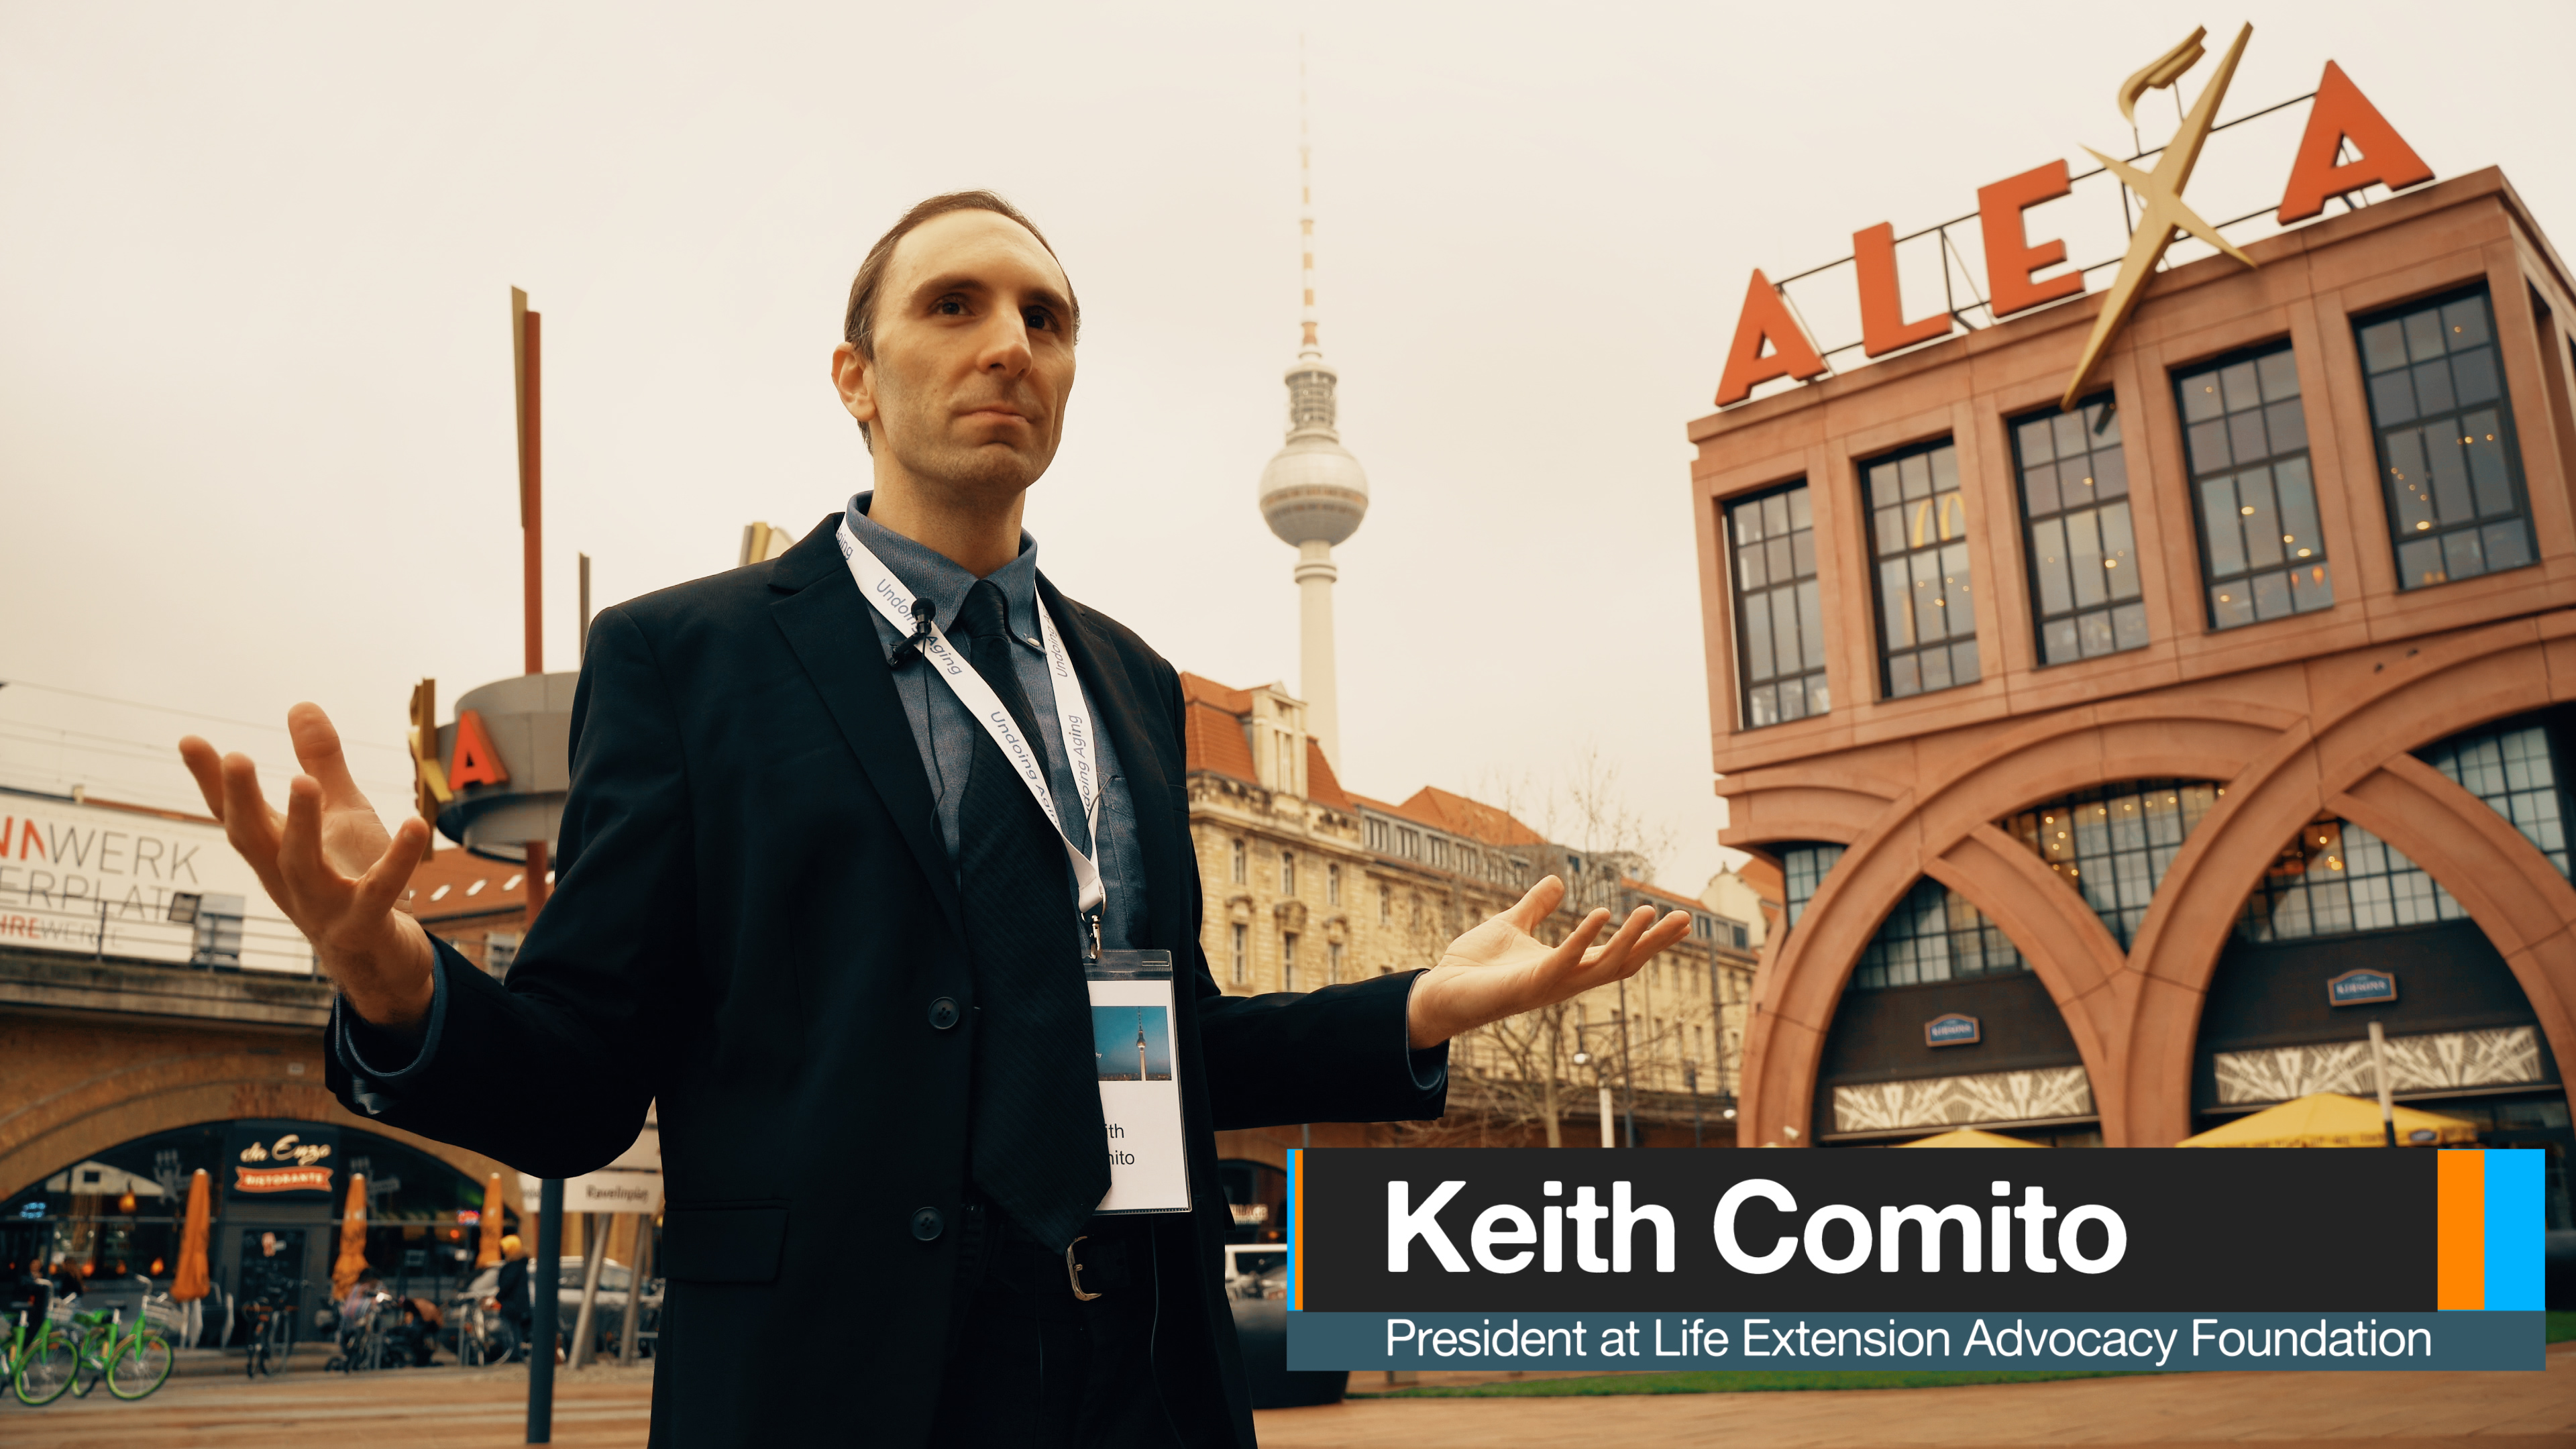 Keith Comito on Undoing Ageing   Science, Technology & the